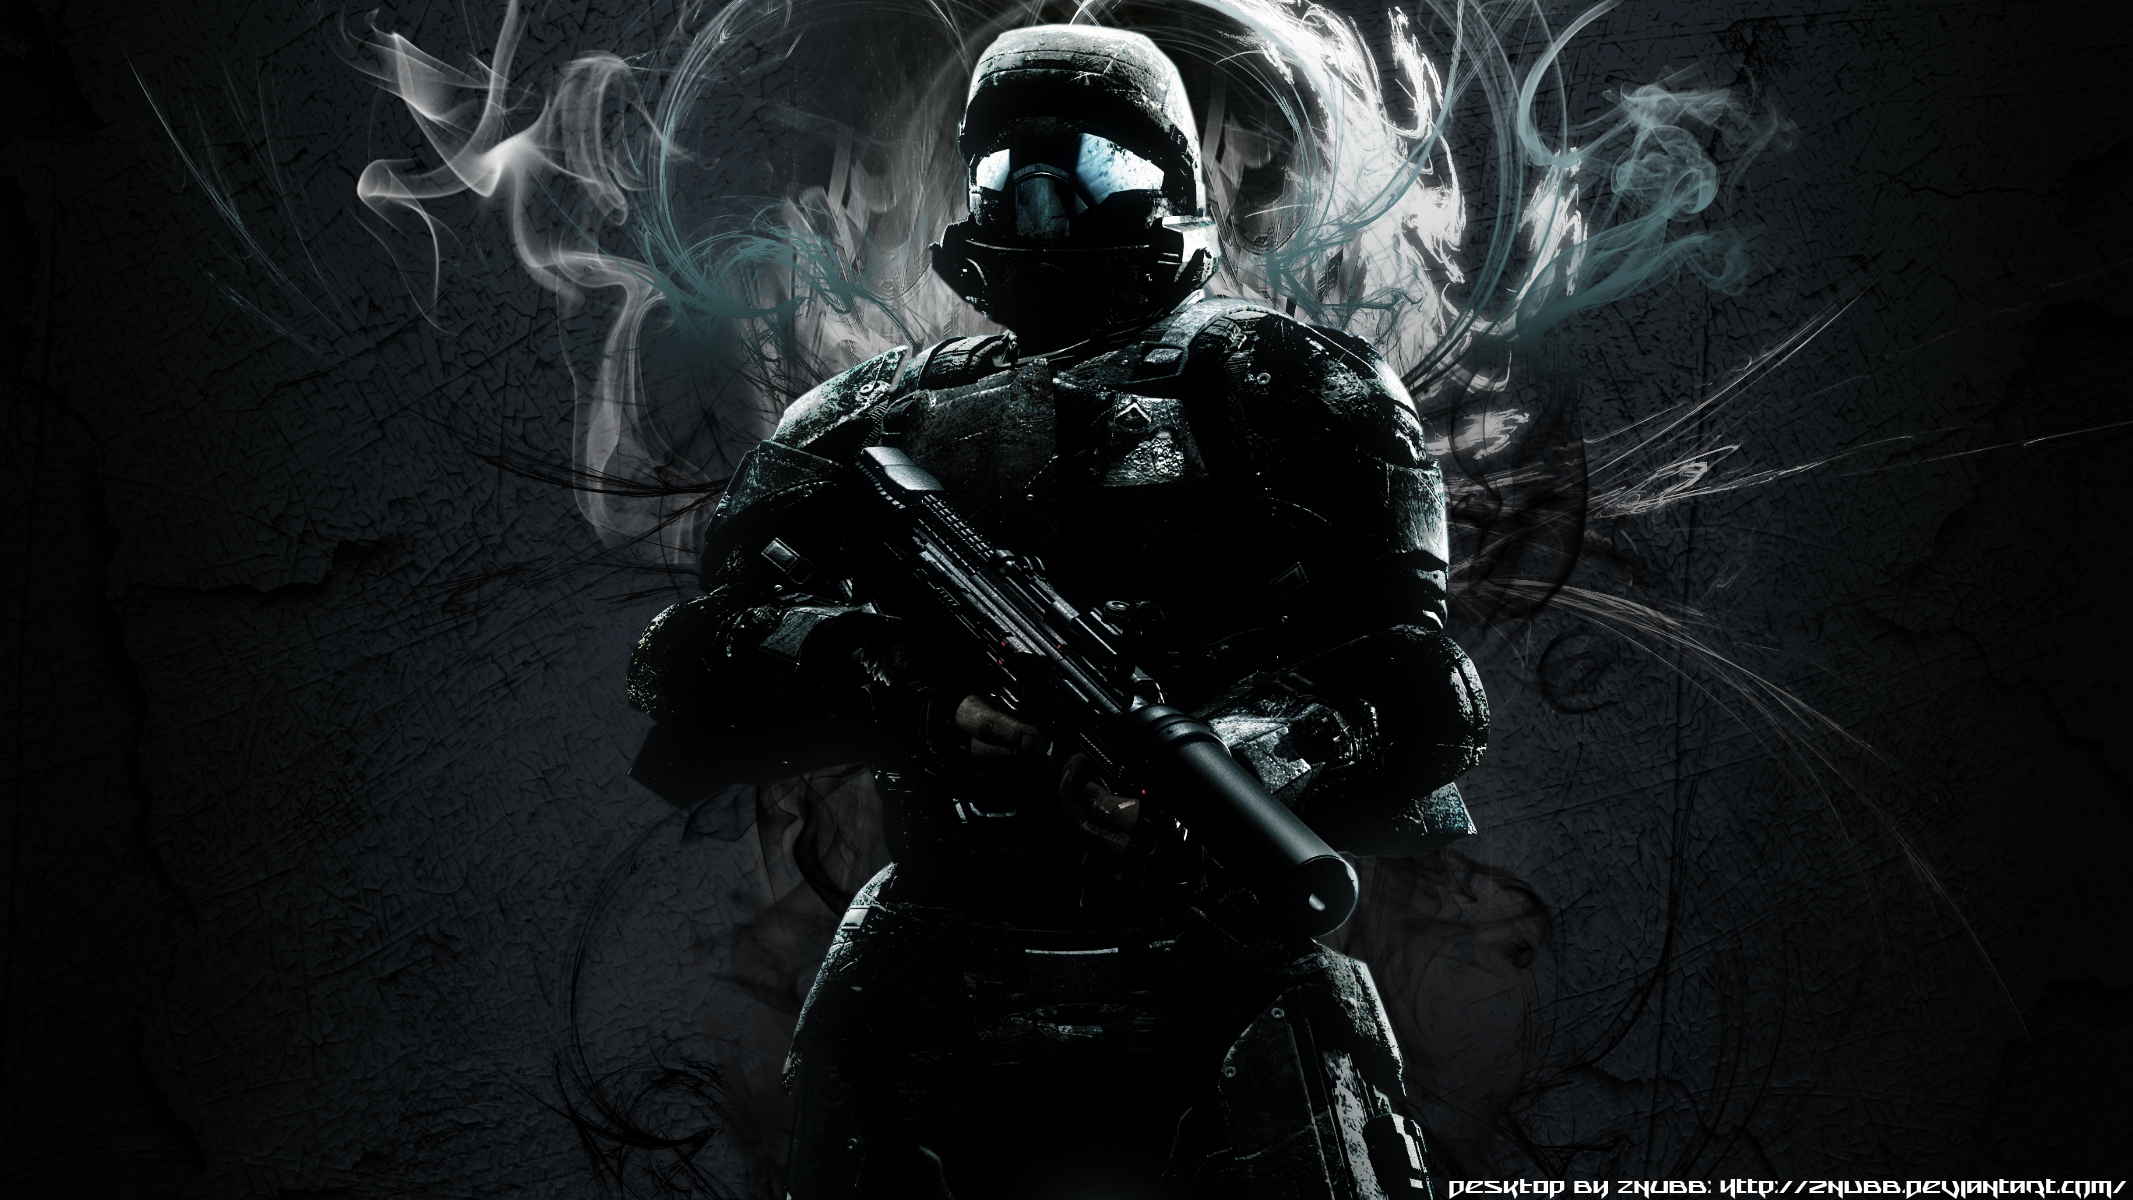 ODST and Recon by HaloRecons12 on DeviantArt